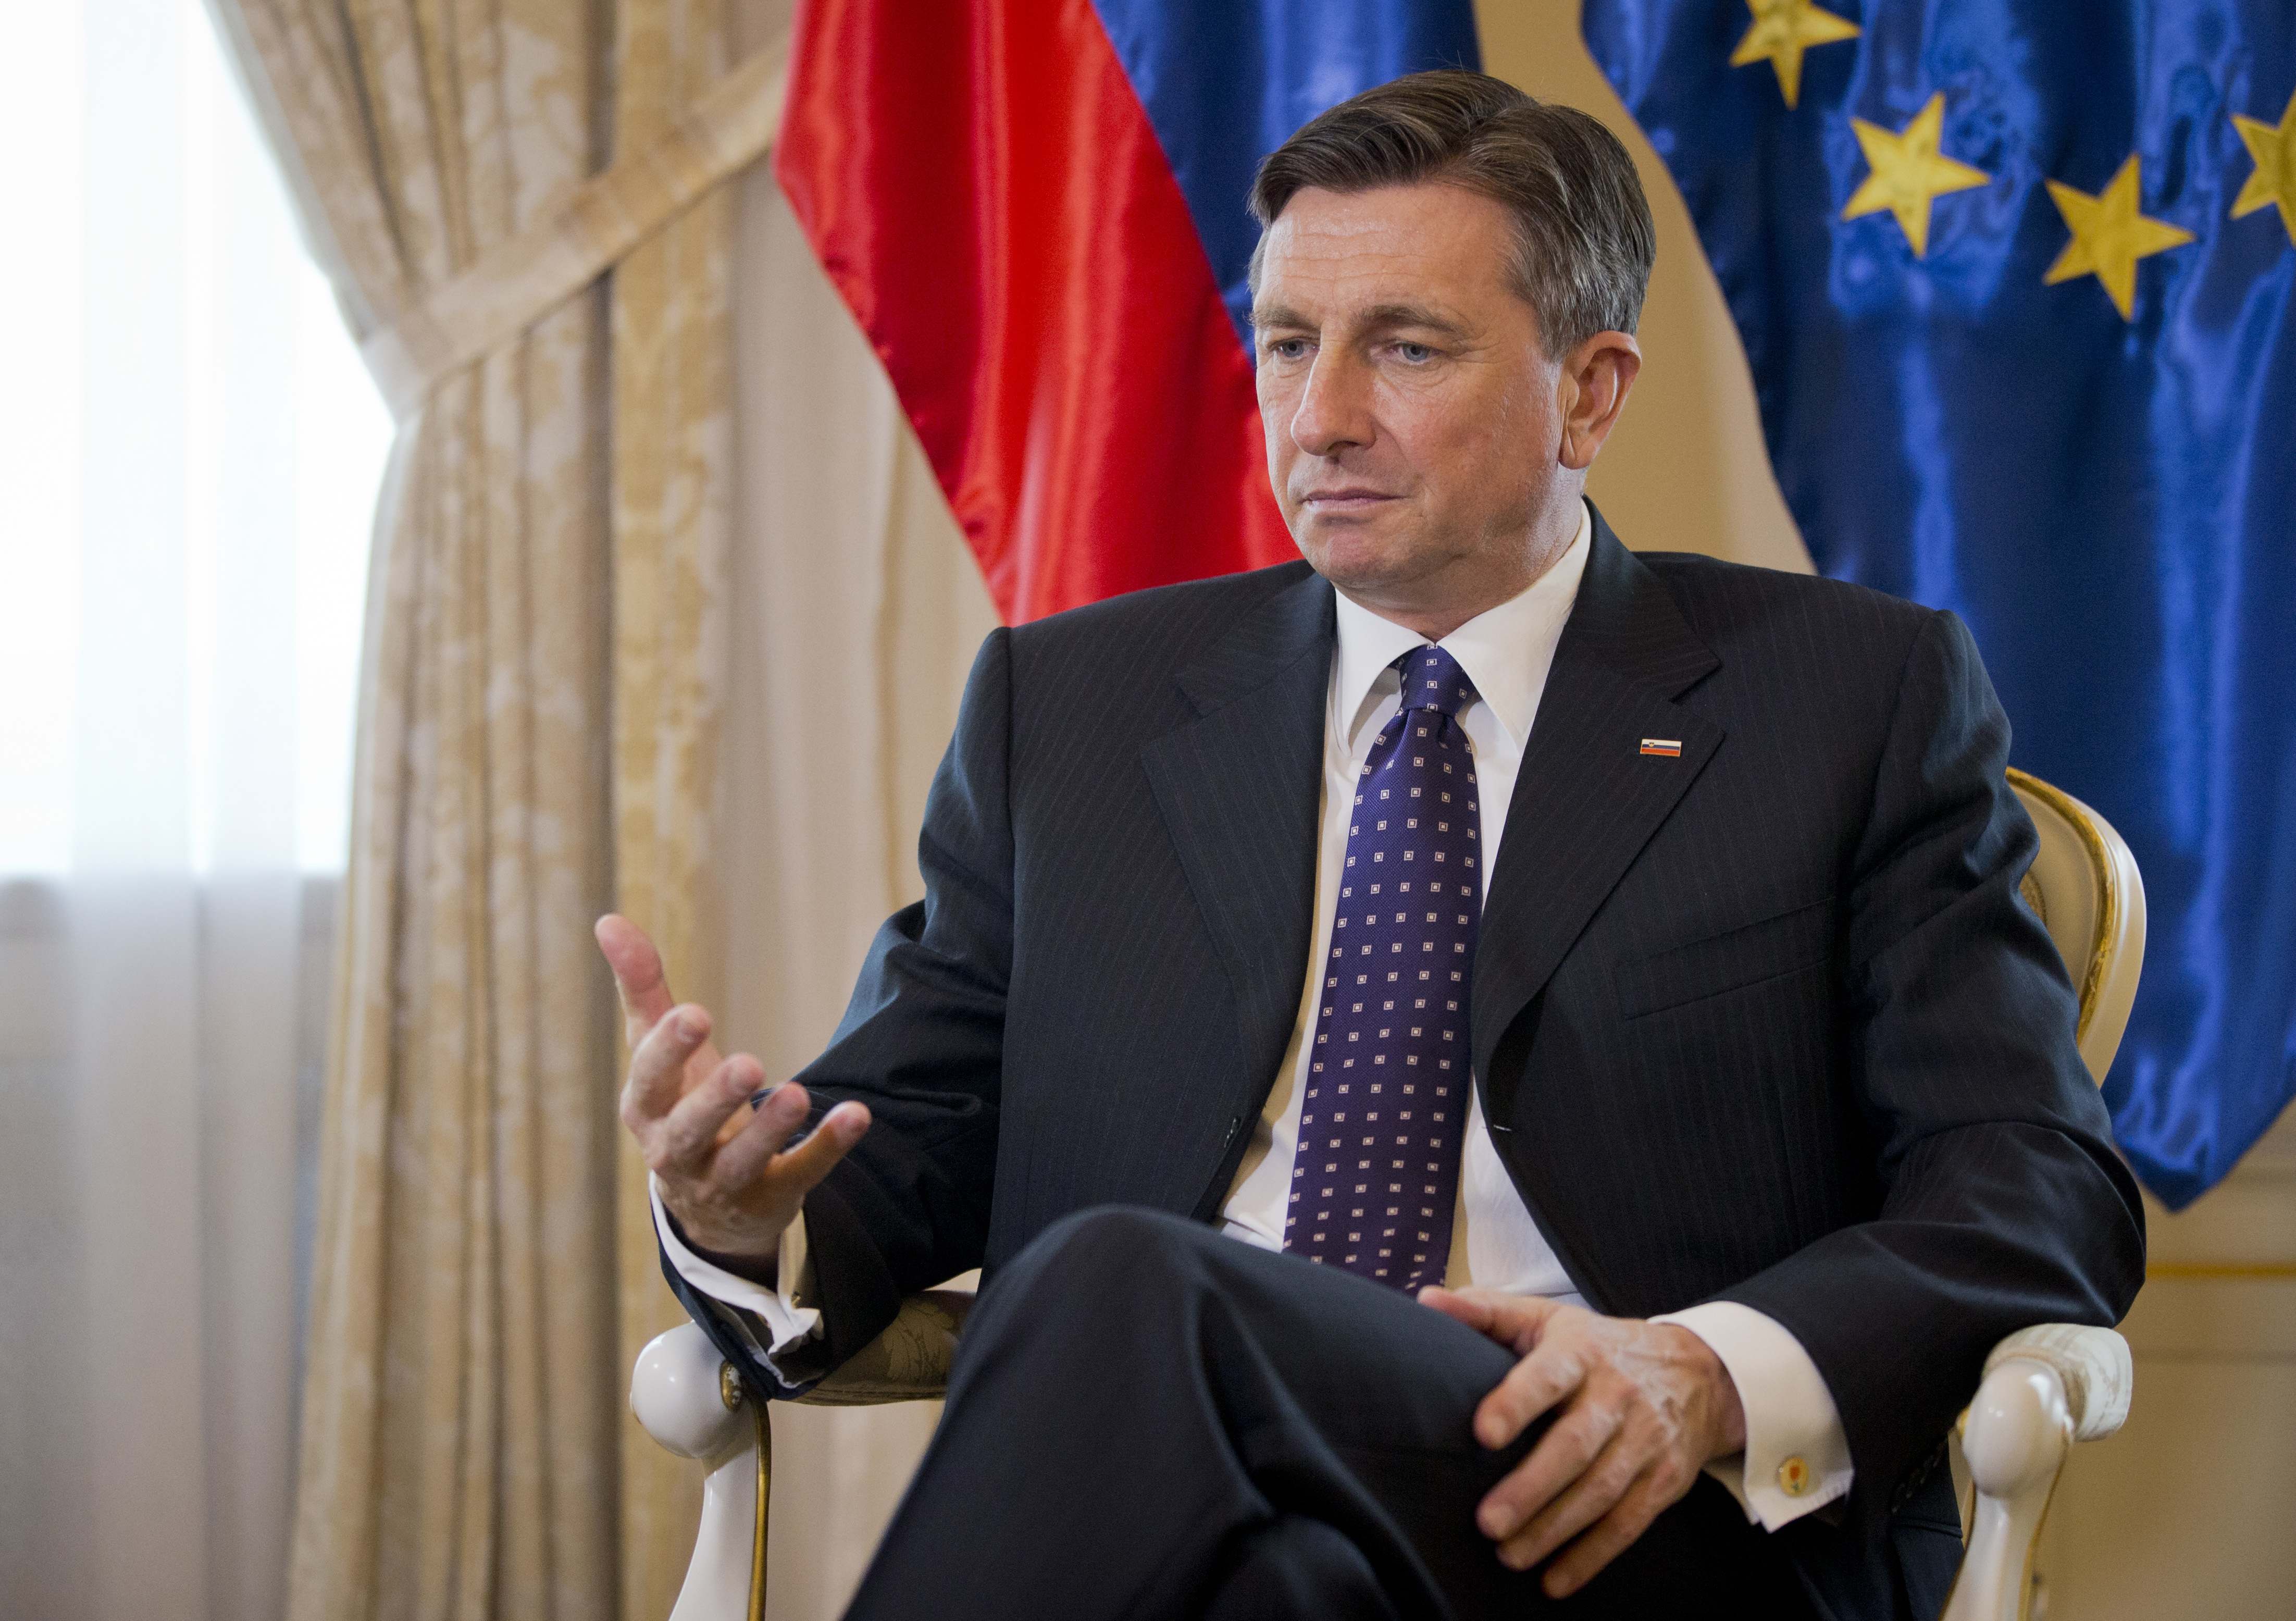 Slovenia's president Borut Pahor gestures during an interview with the Associated Press in Ljubljana, Slovenia on March 6, 2017. (AP Photo/Darko Bandic)